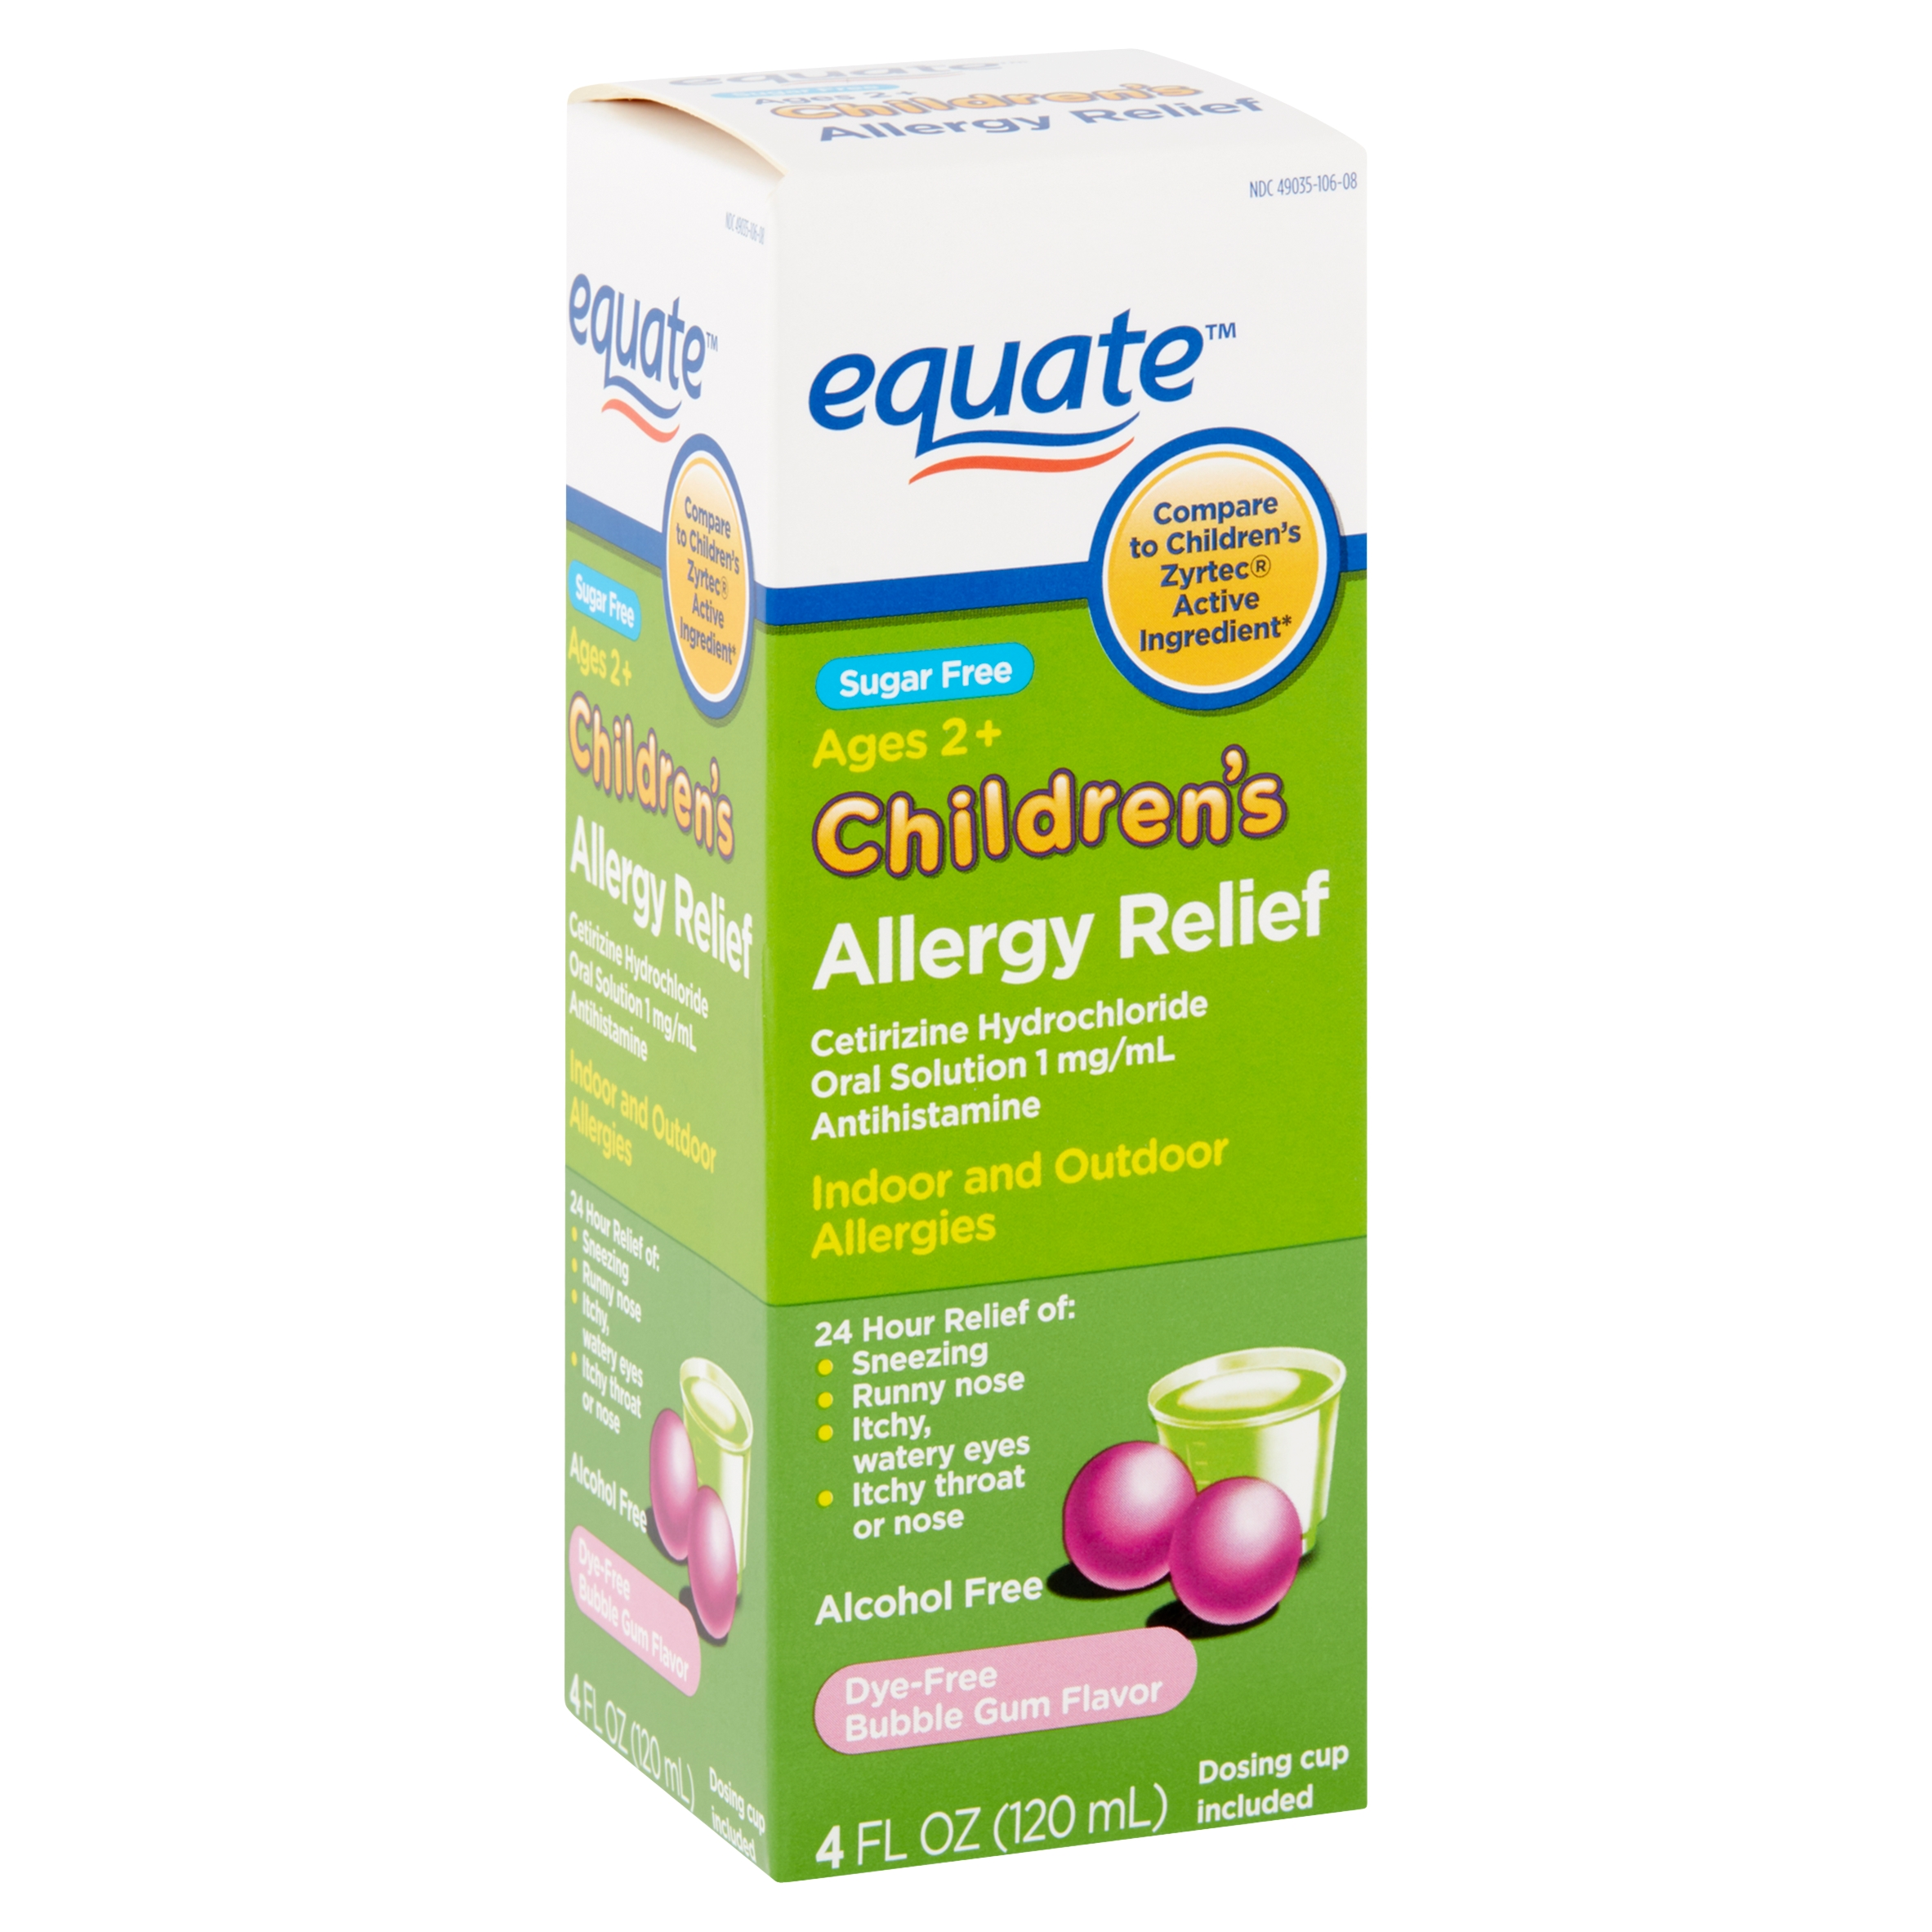 Equate Children's Allergy Relief Cetirizine HCl Oral ...